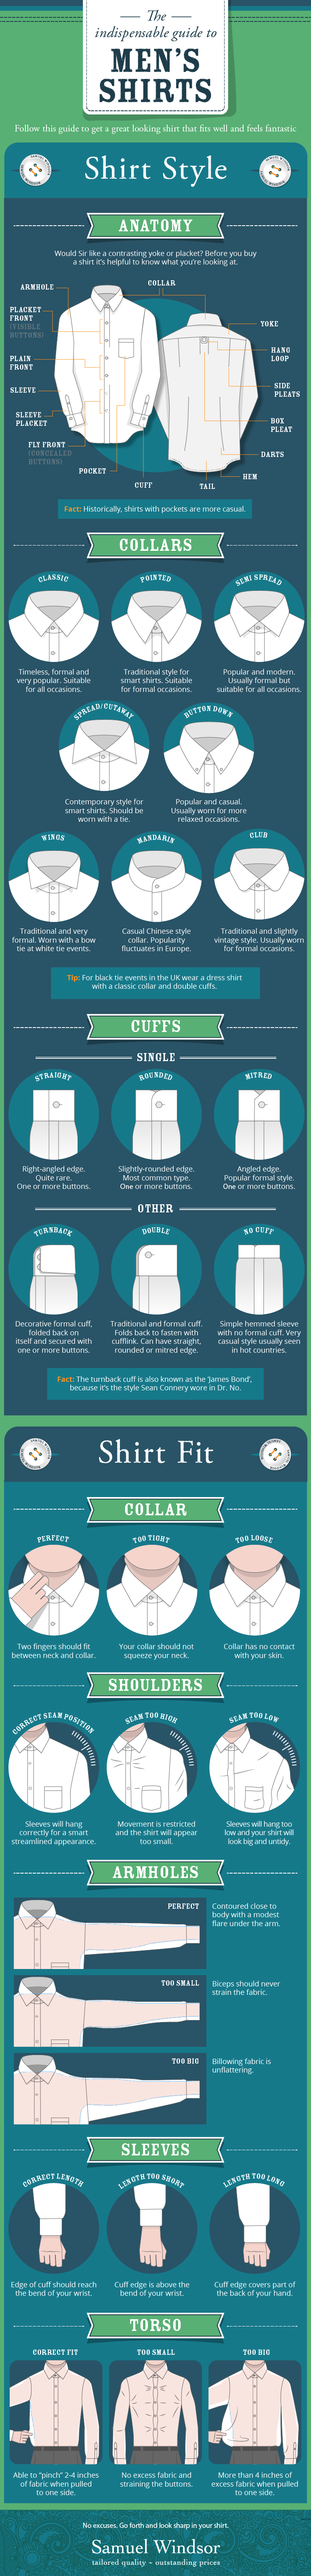 Men's Shirts: The Ultimate Style Guide - Infographic